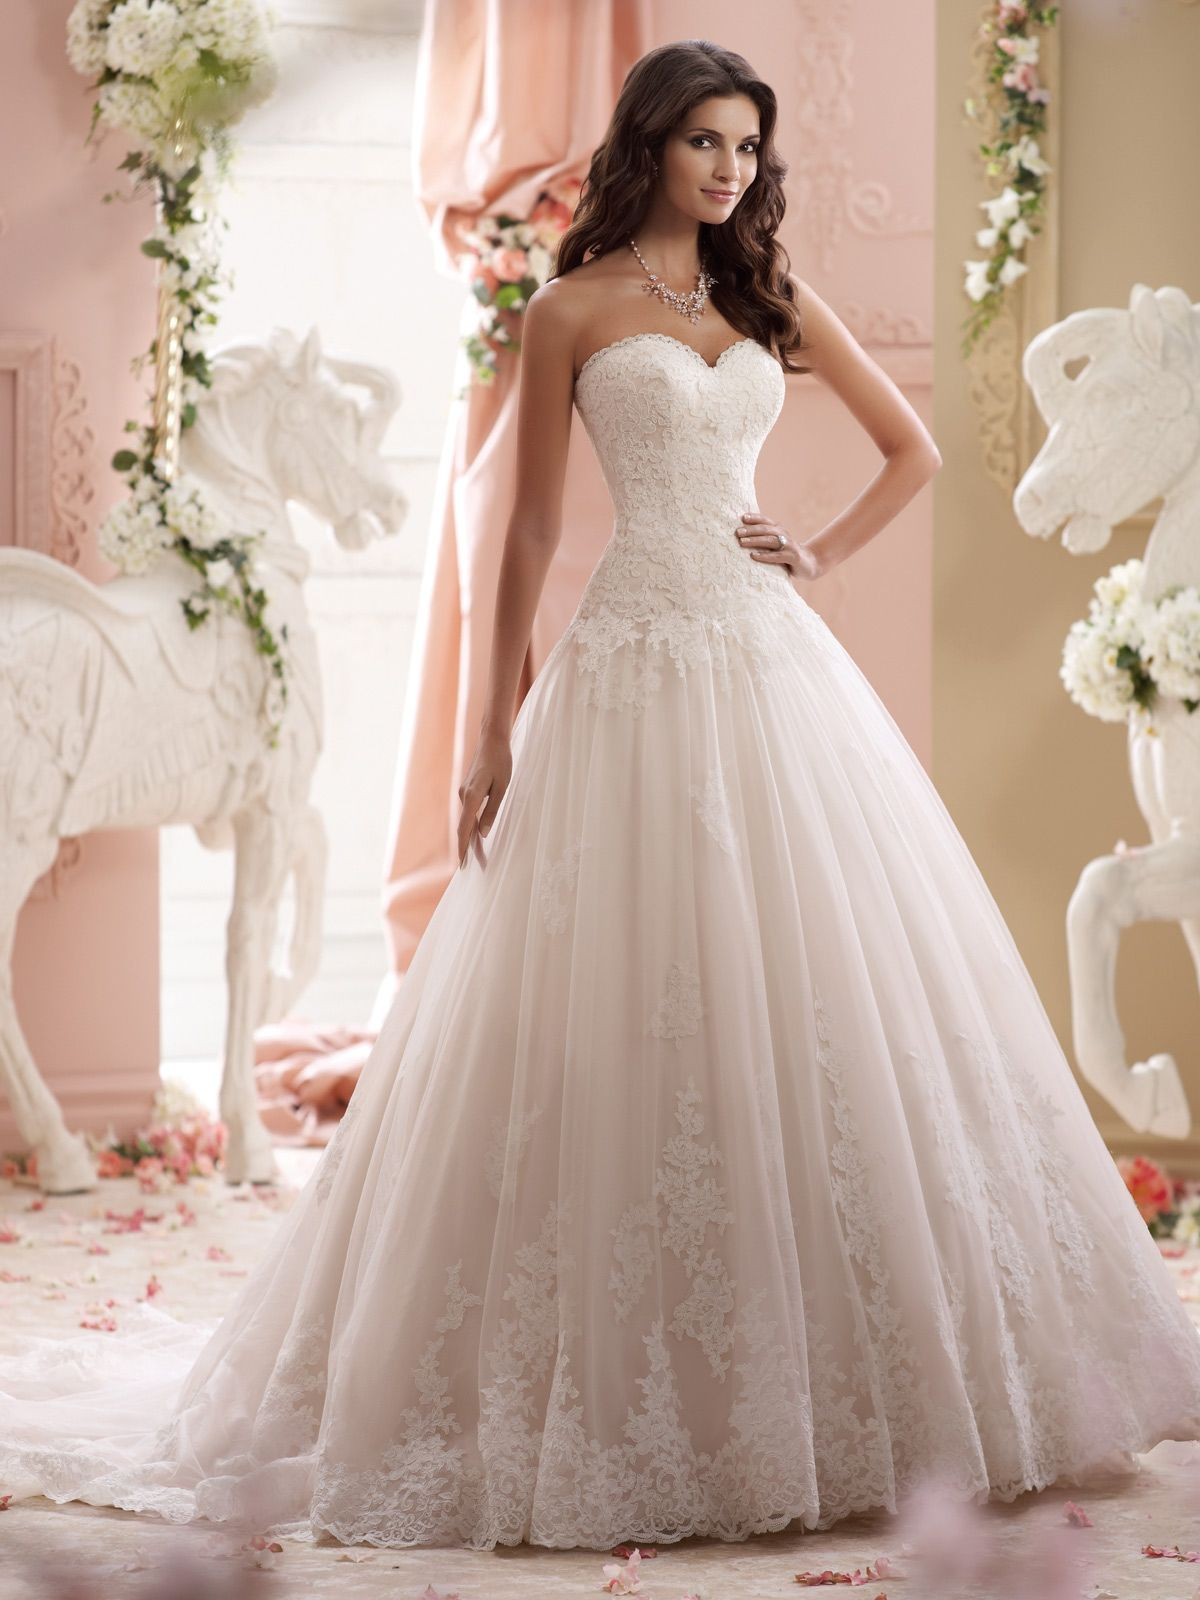 Wedding Wedding Dress 2015 wedding dresses 2015 collection strapless corded lace tulle and organza over satin ball